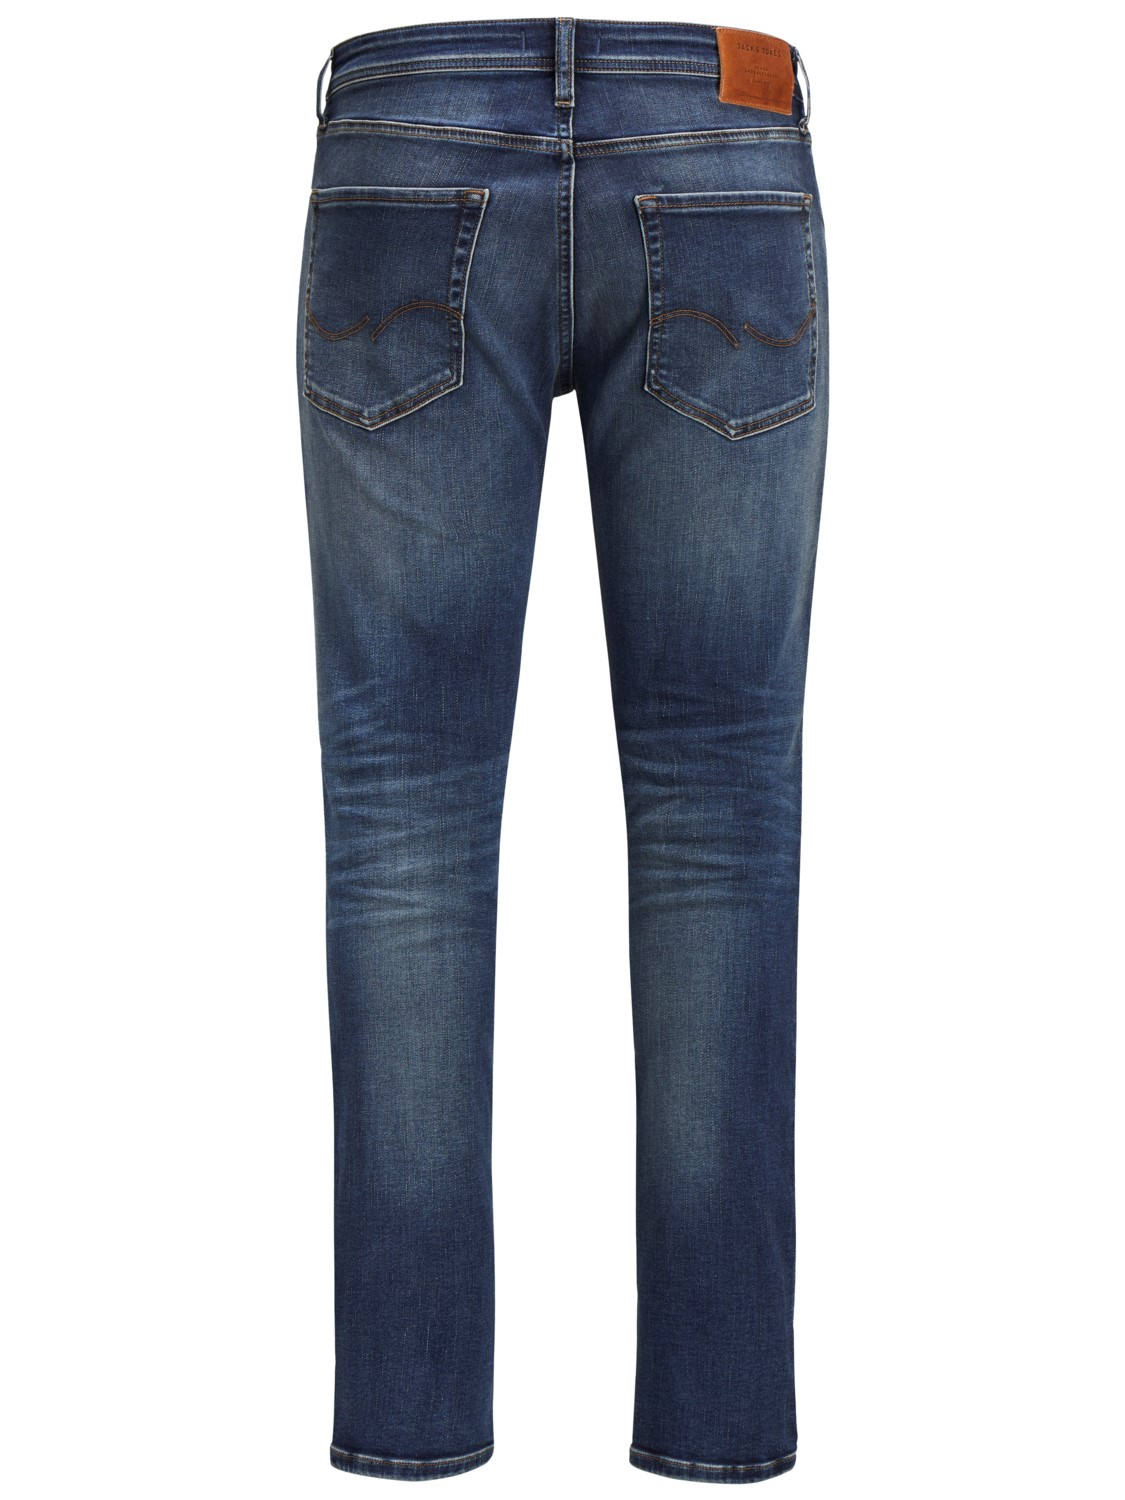 jack-jones-herren-jeans-jjitim-jjoriginal-jos-107-50sps-slim-fit-blau-blue-denim